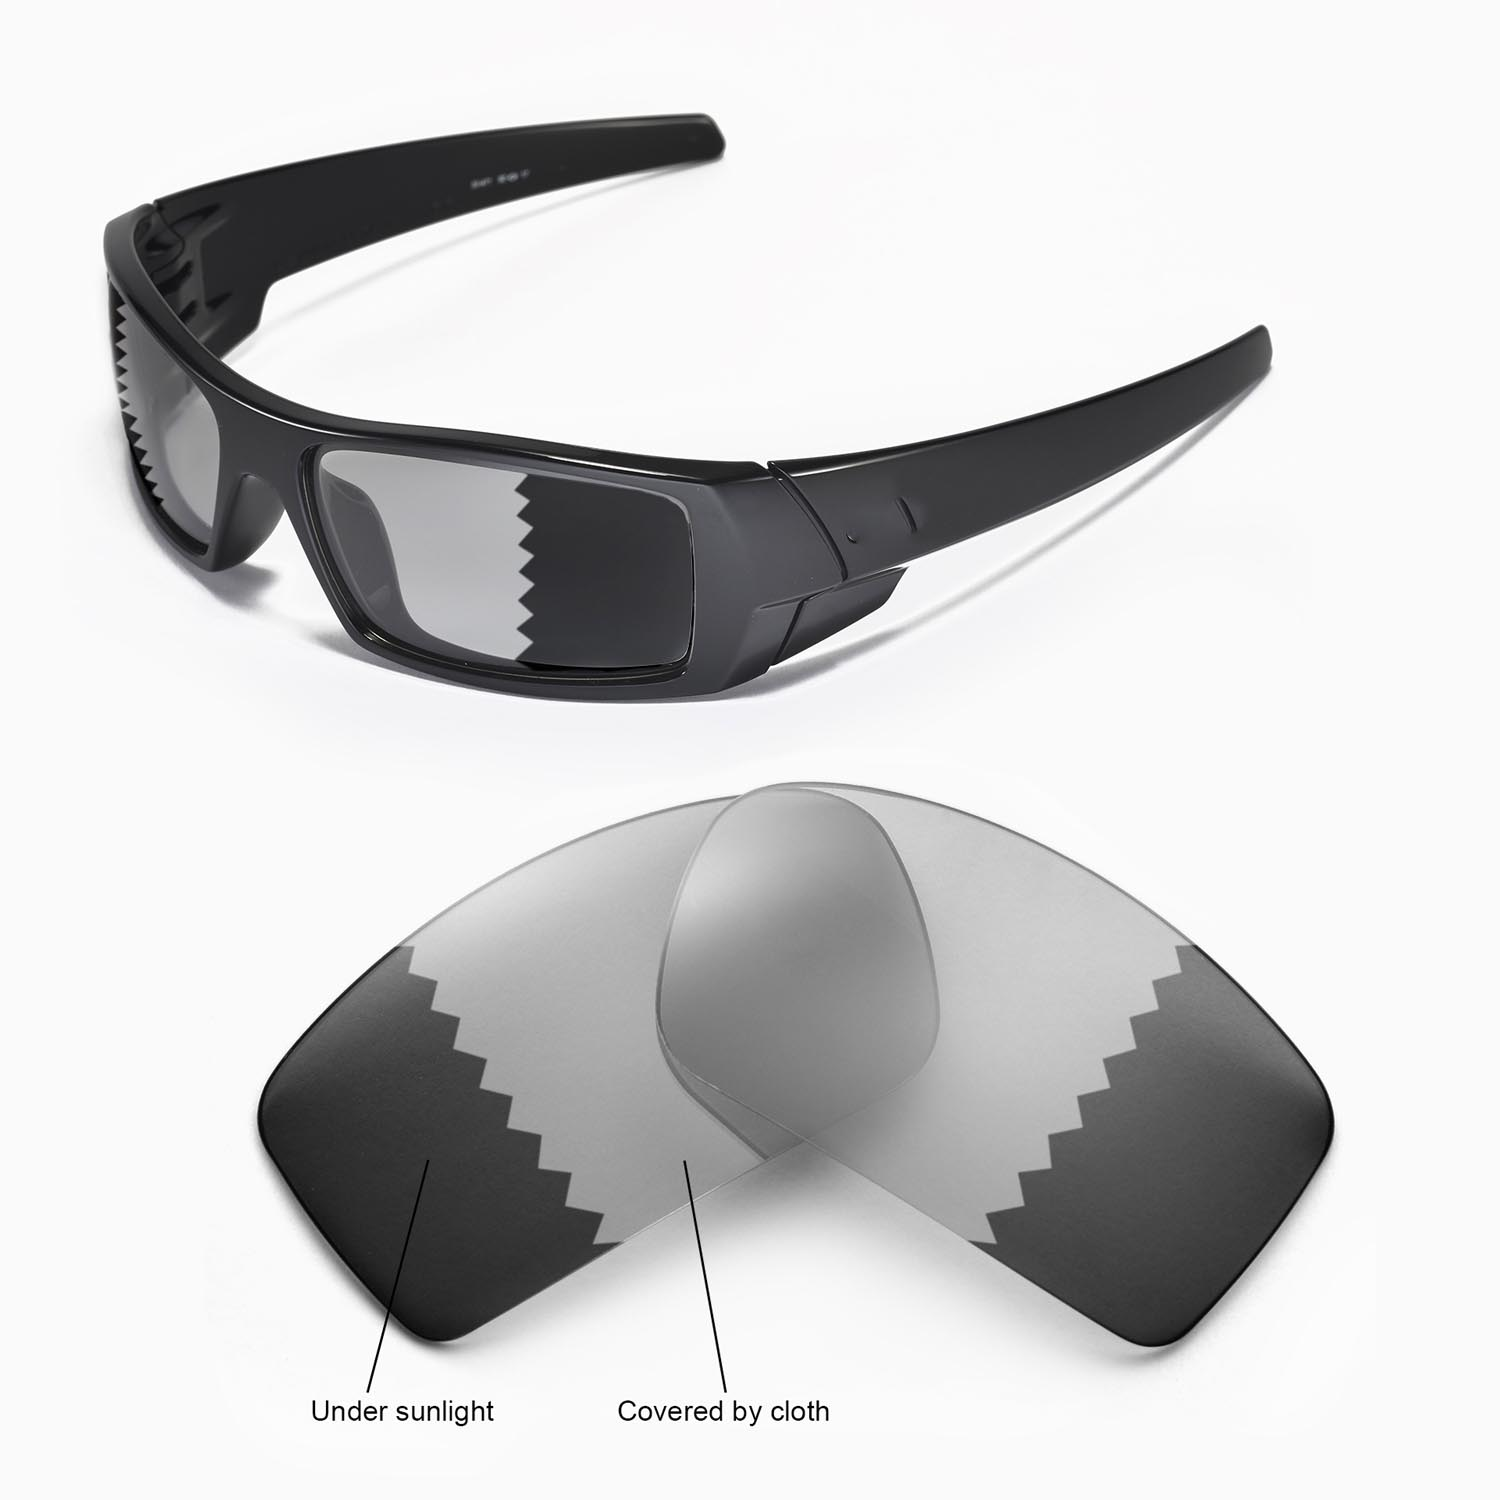 New WL Polarized Transition/Photochromic Replacemet Lenses For ...